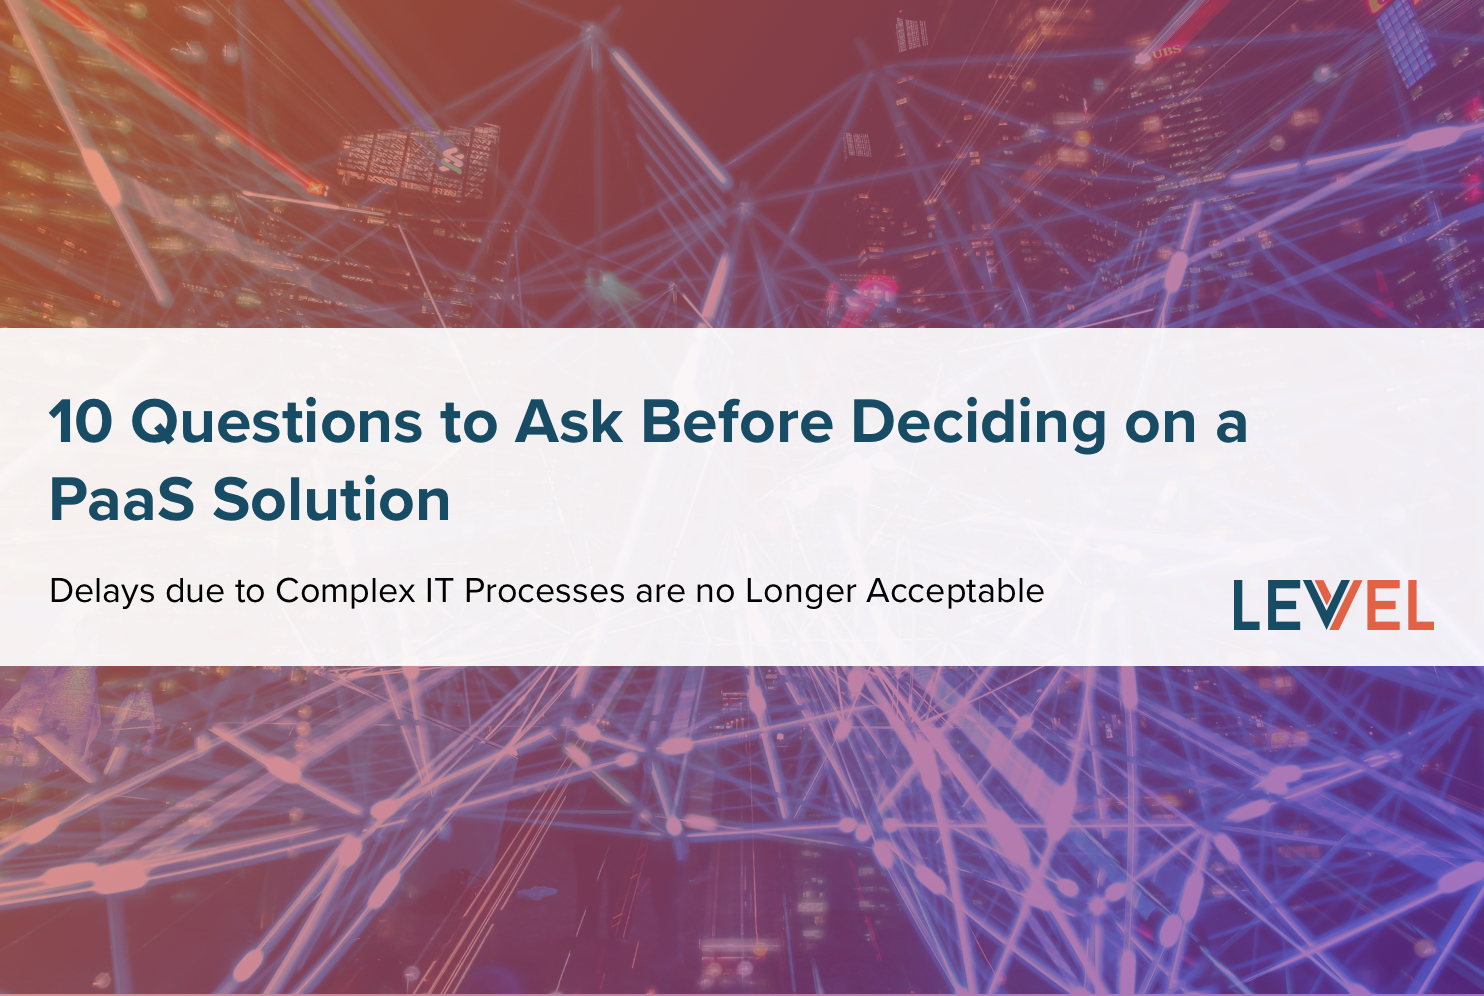 10 Questions to Ask Before Deciding on a Paas Solution